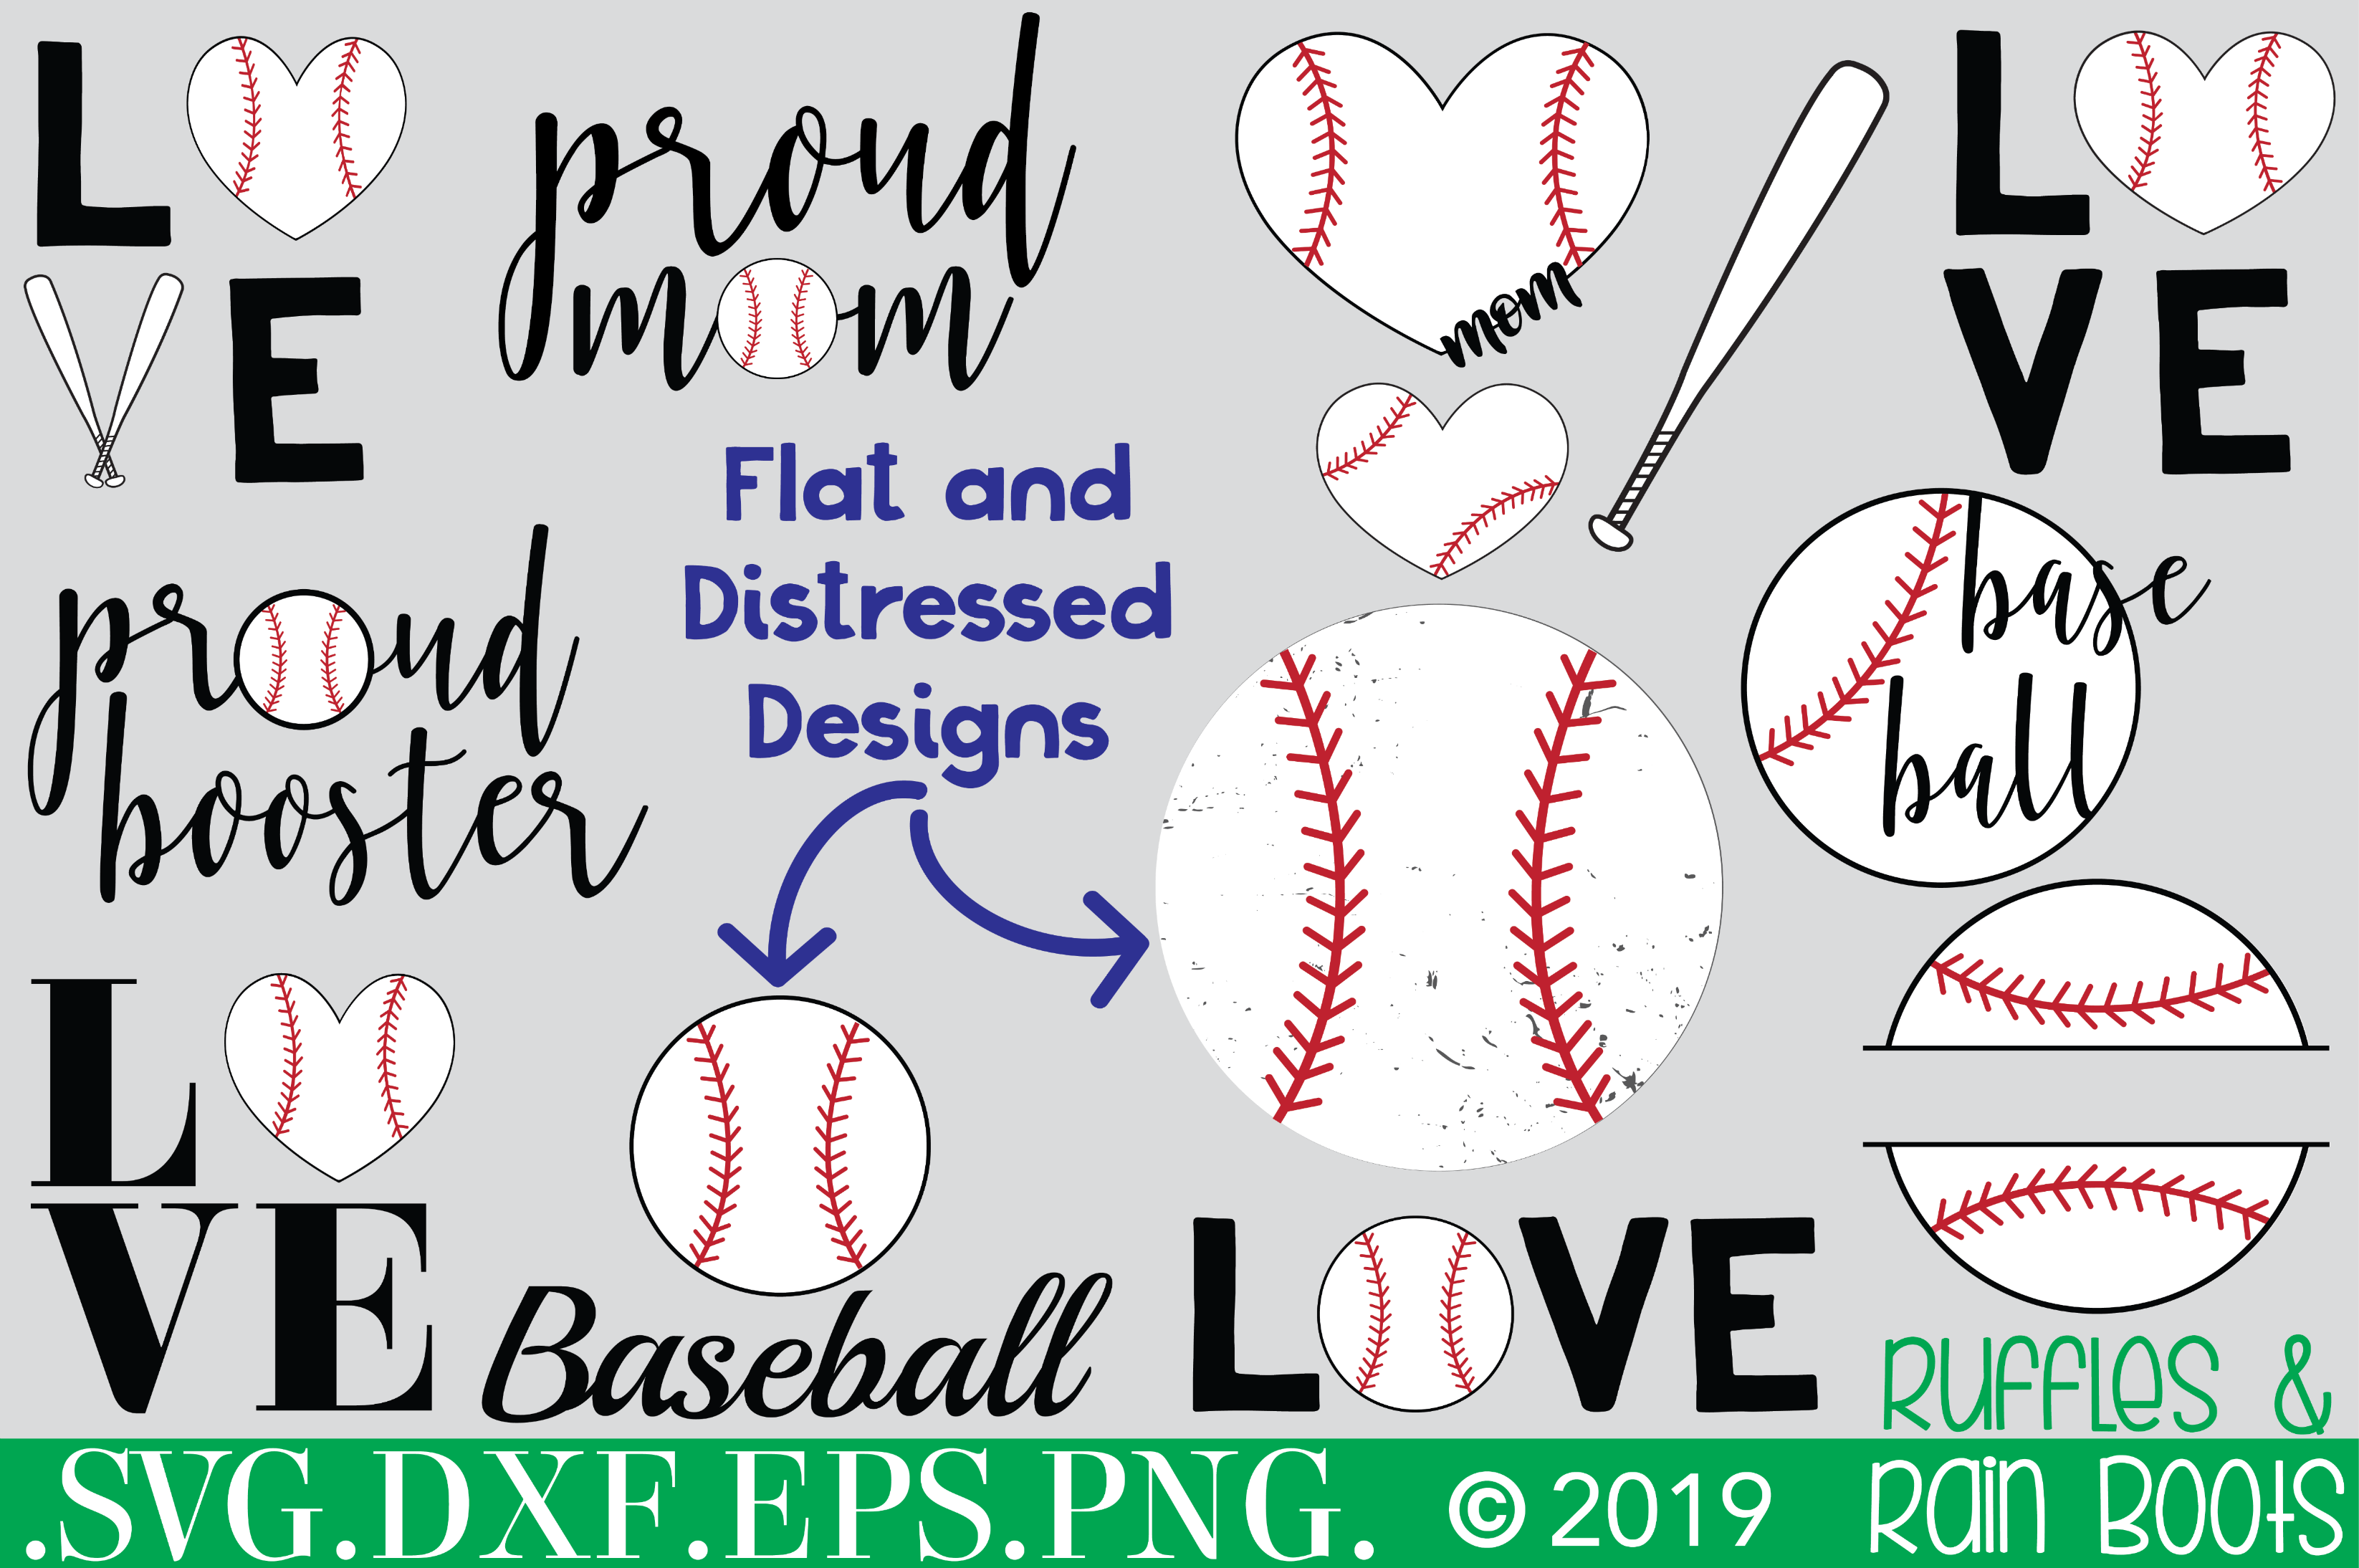 baseball SVG bundle with SVG PNG DXF cut files